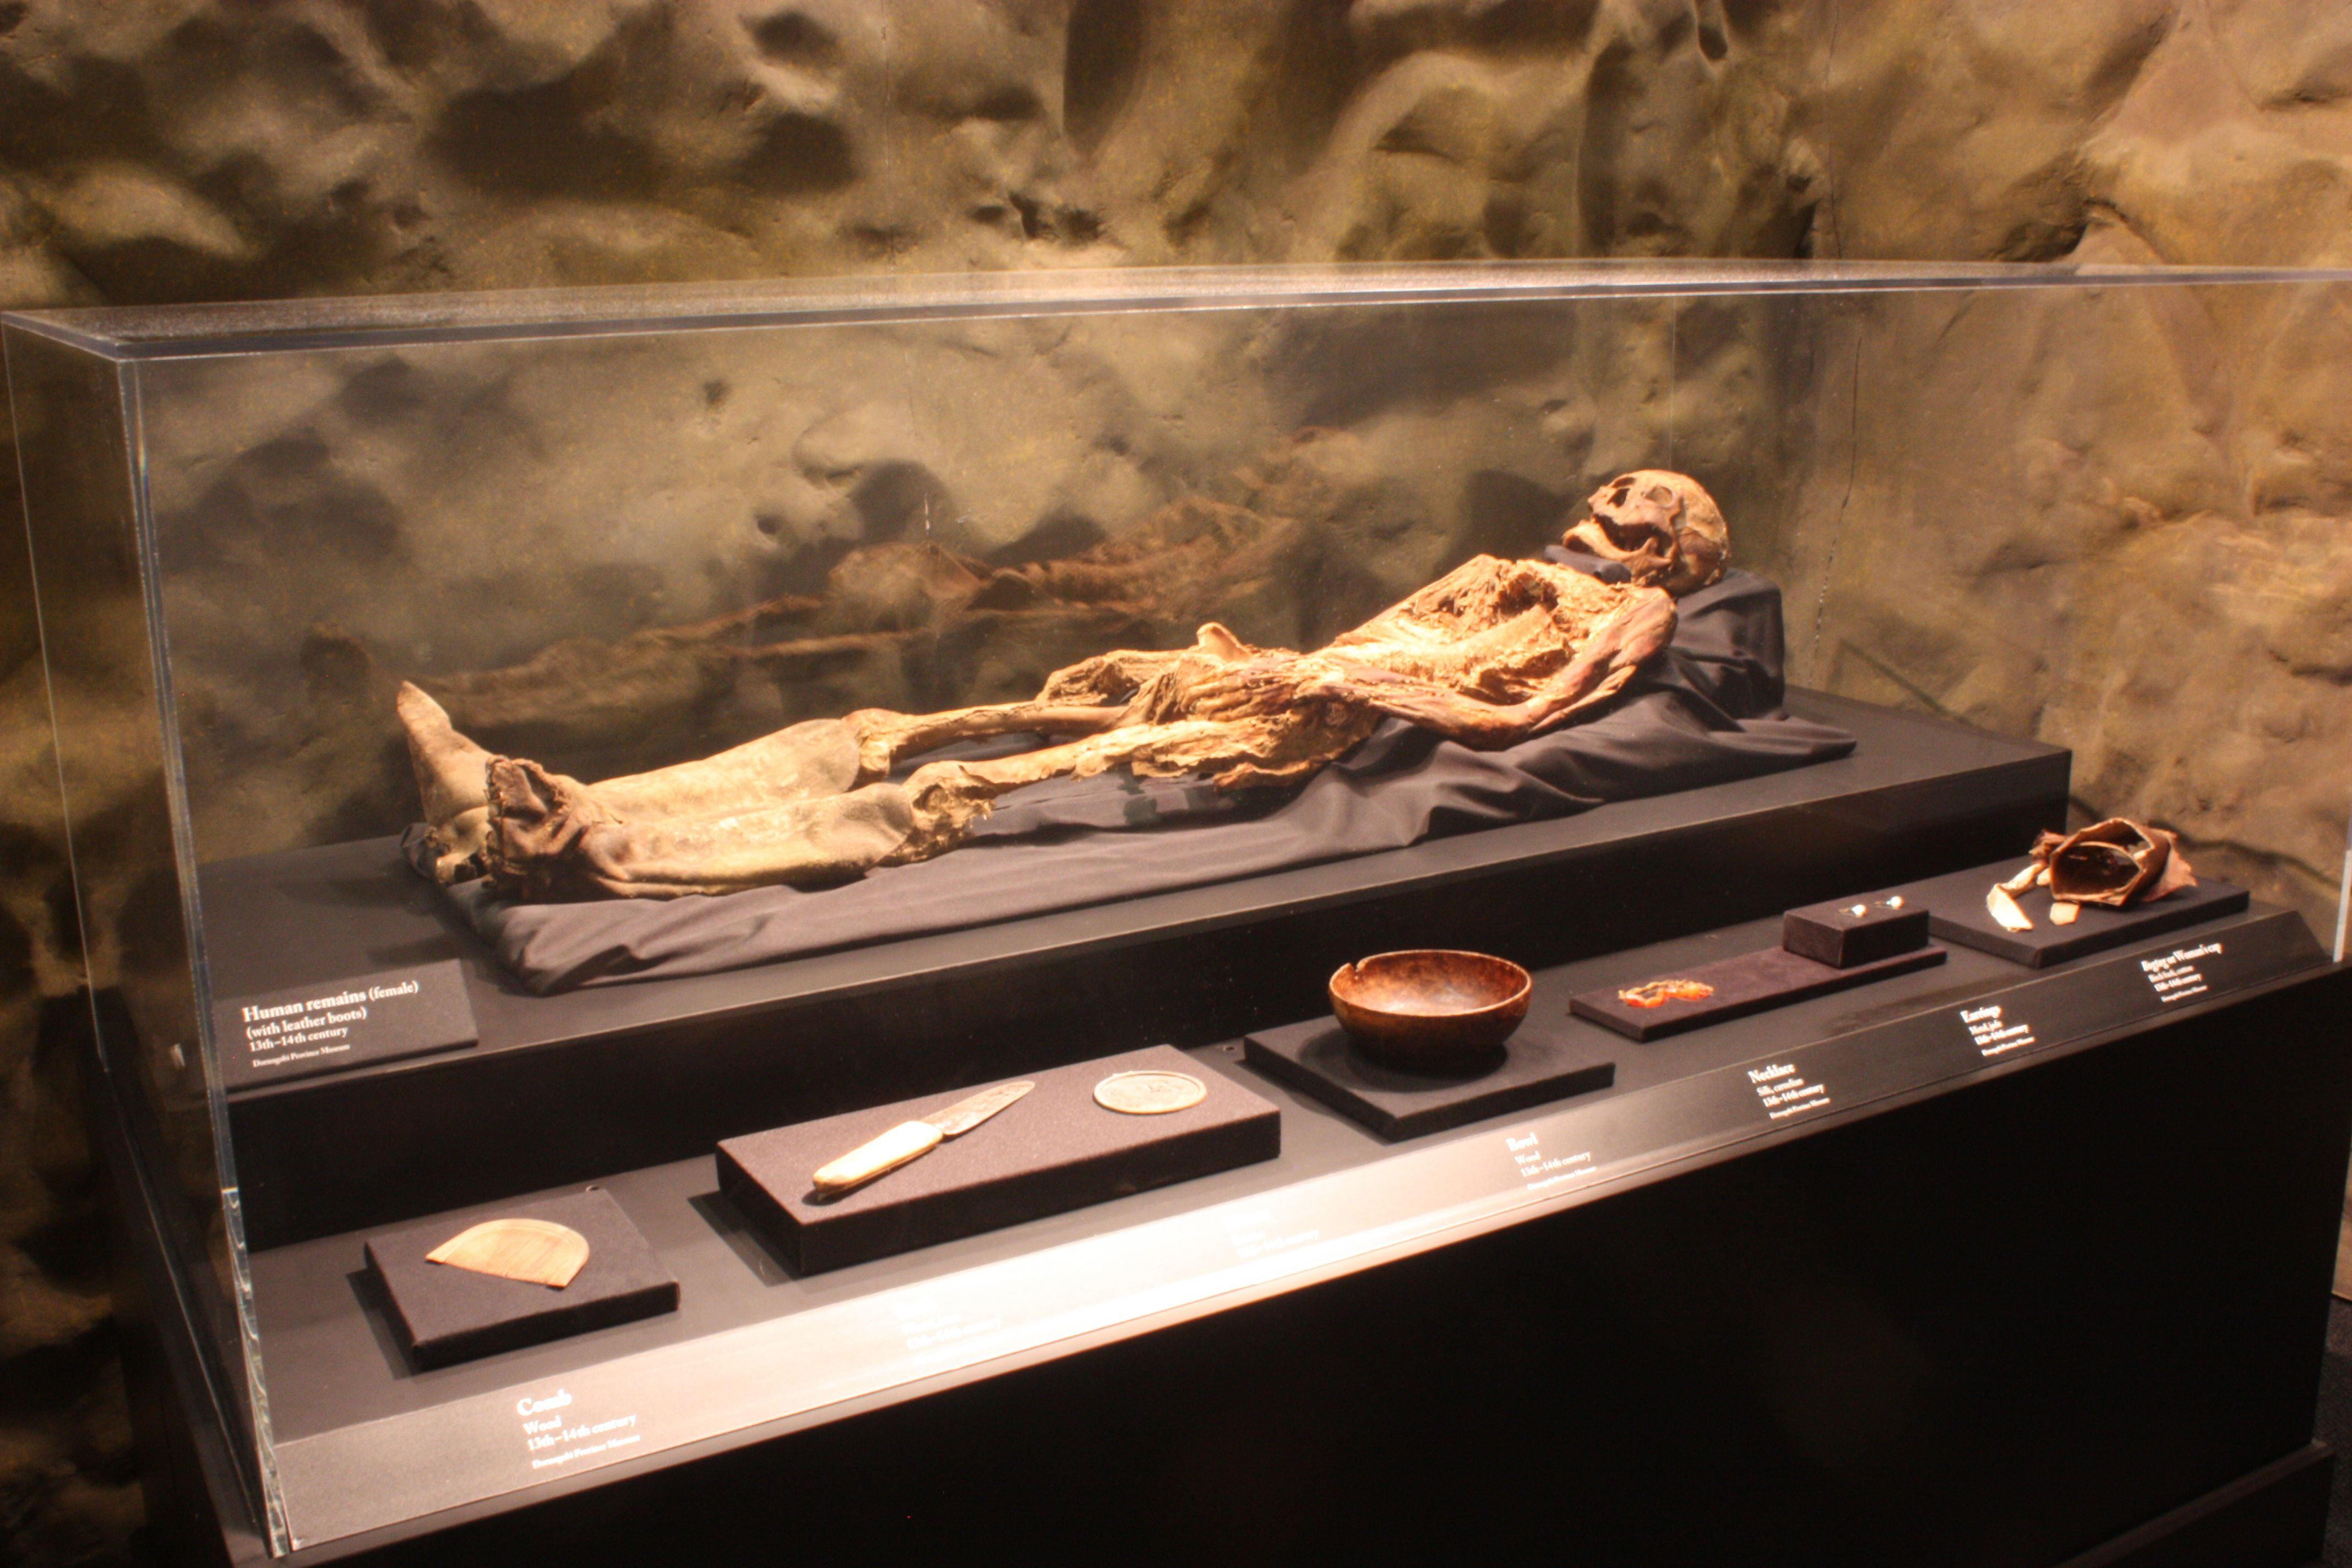 Photo of mummy from the Genghis Khan exhibit at Denver's Museum of Science and Nature